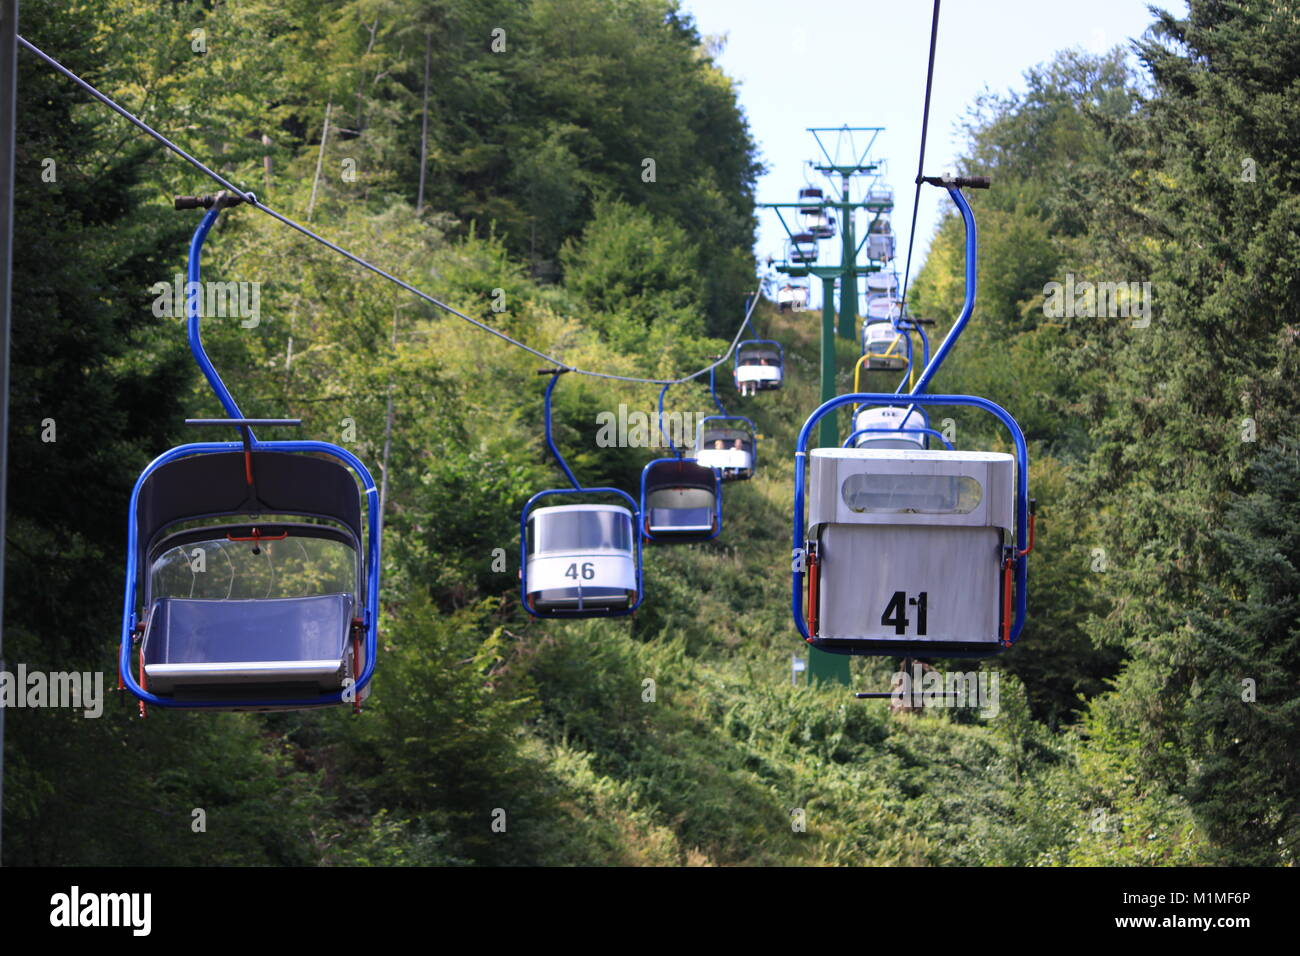 Chairlift Cable Seats Sky Stock Photos & Chairlift Cable Seats Sky ...